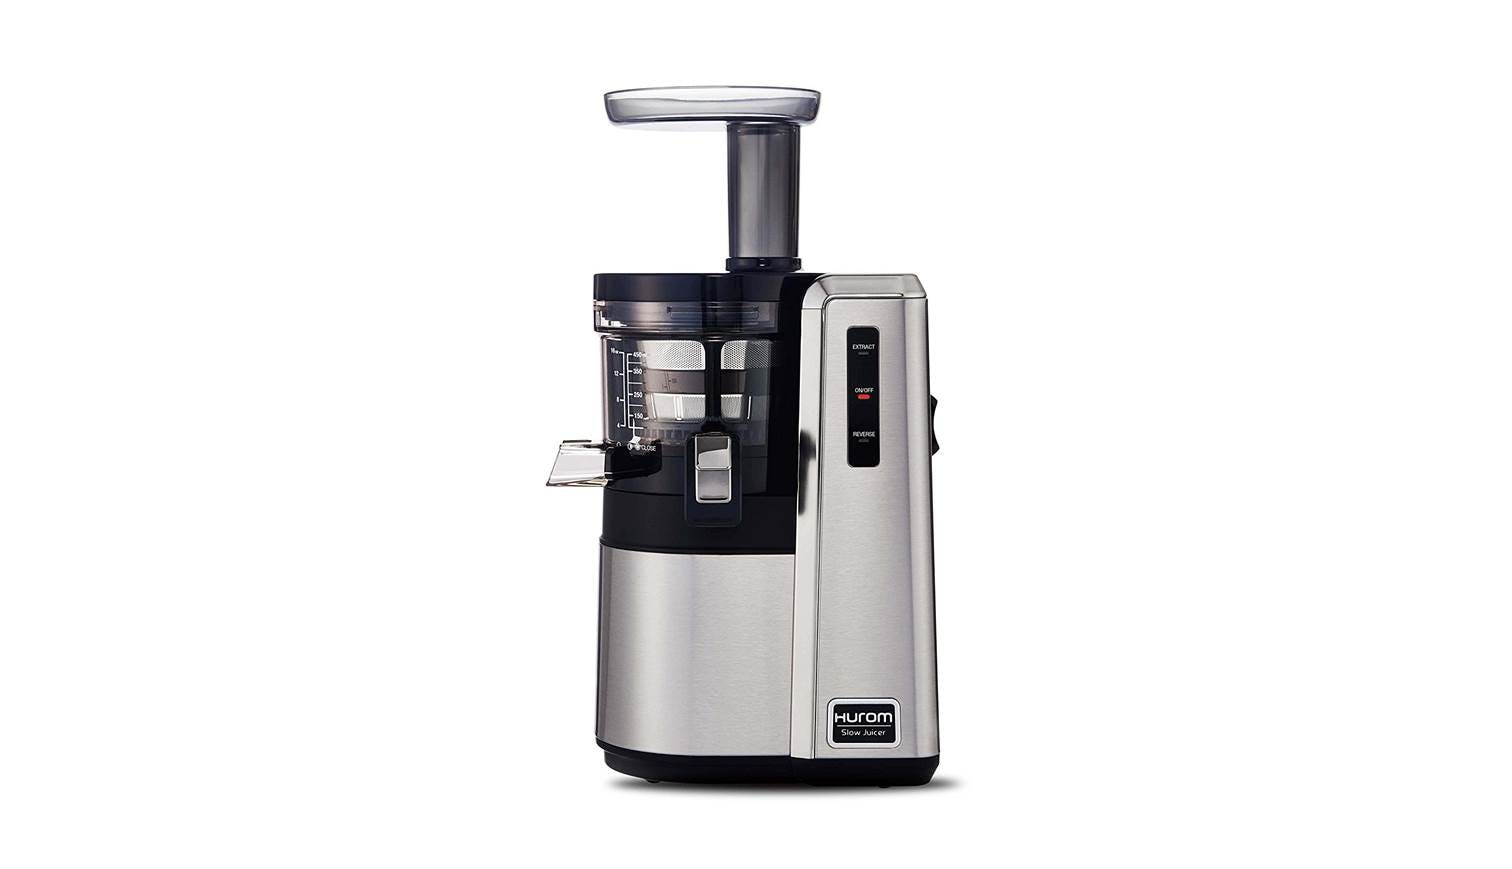 Hurom Slow Juicer Harvey Norman : Hurom HZ2500S Slow Juicer Harvey Norman Singapore